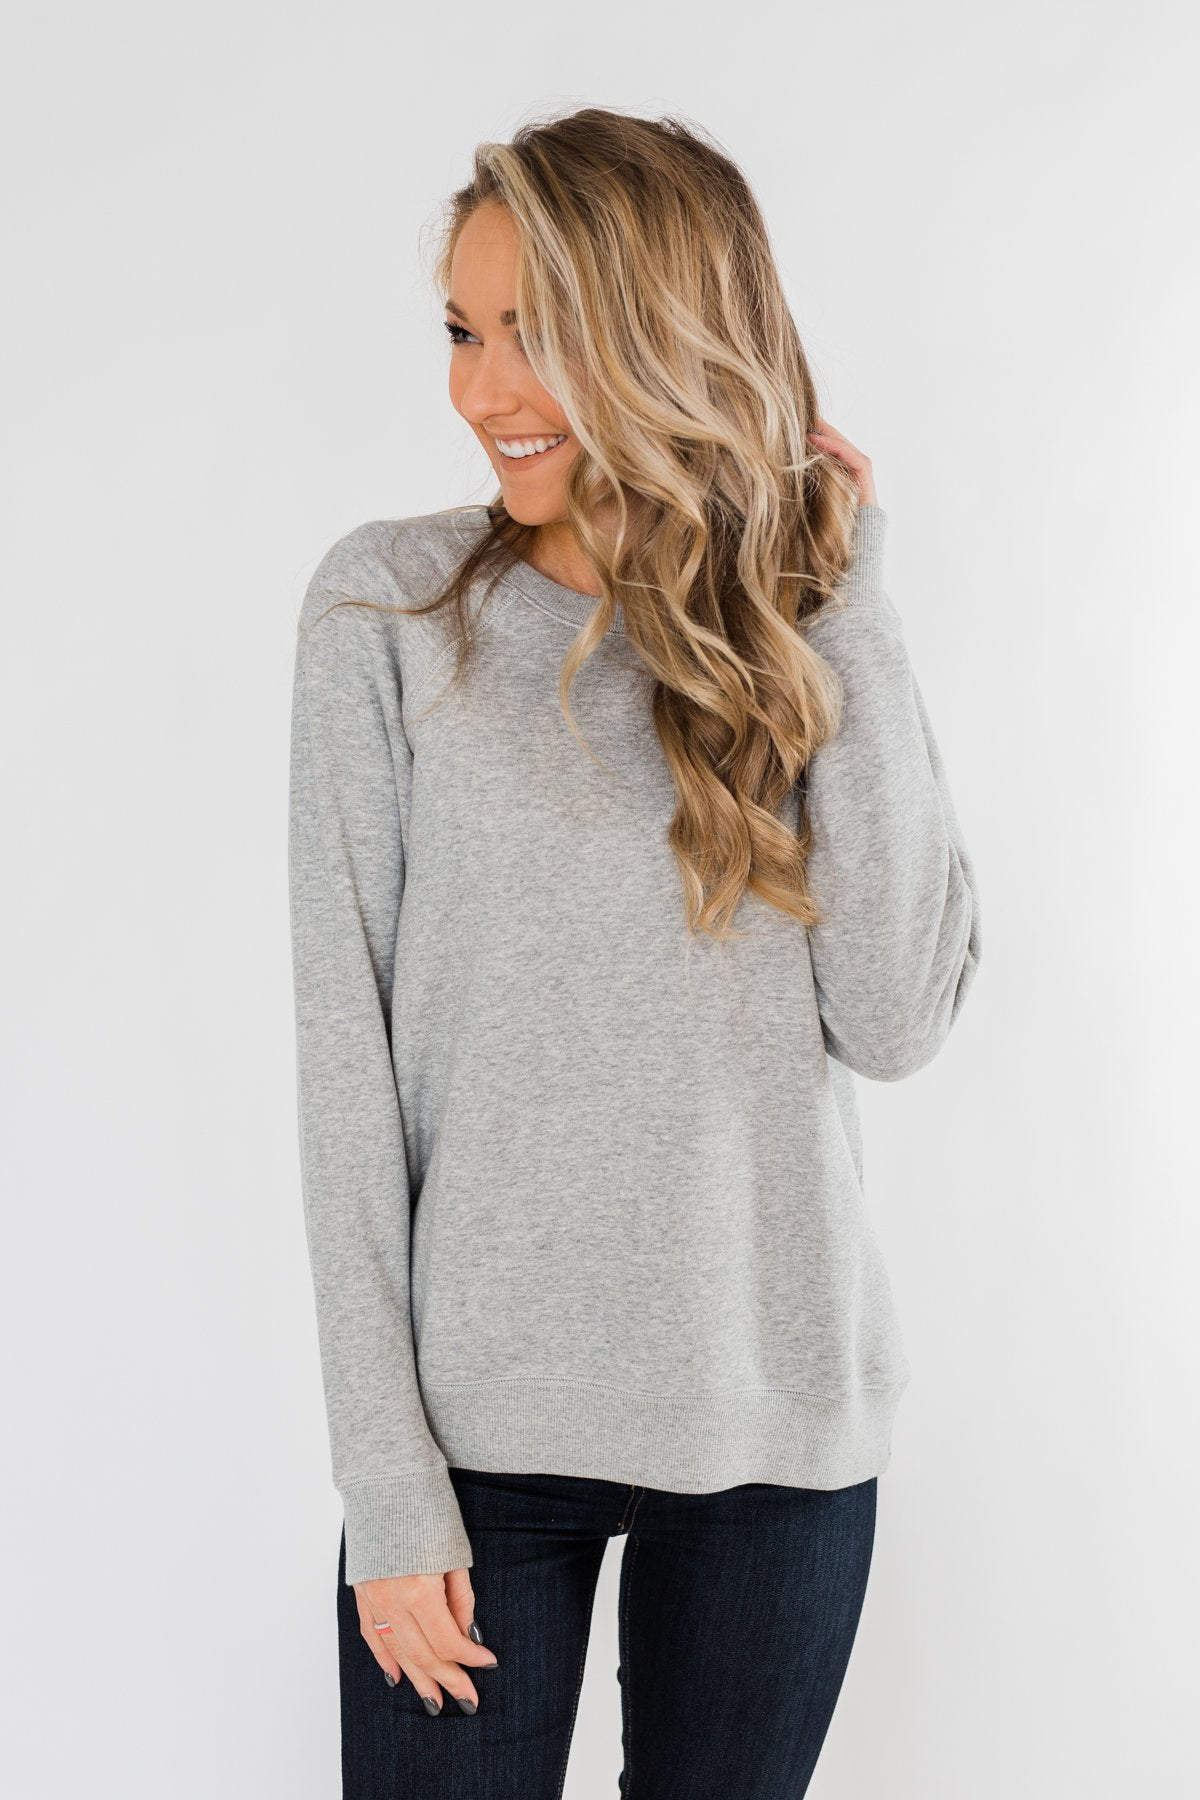 Pulse Basics Crew Neck Pullover- Heather Gray